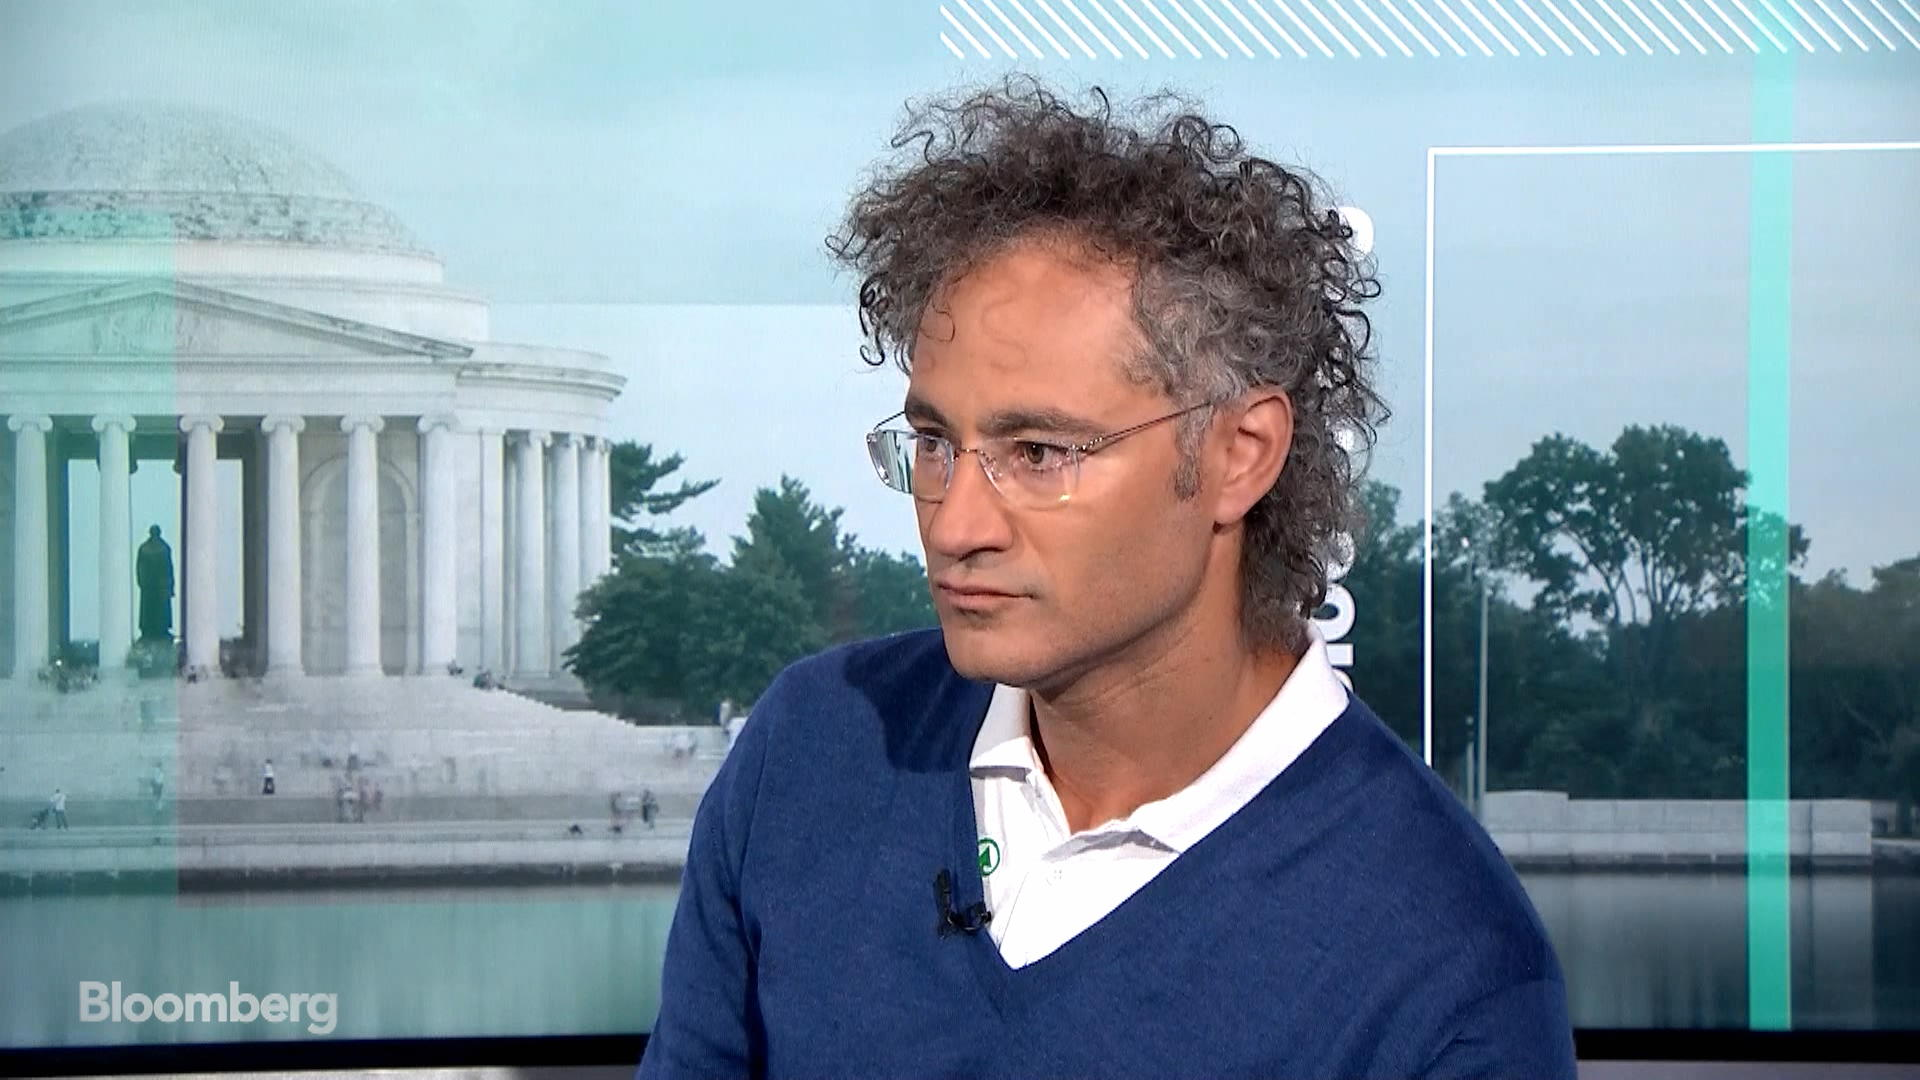 Palantir CEO Karp on Silicon Valley, ICE, 2020 Election